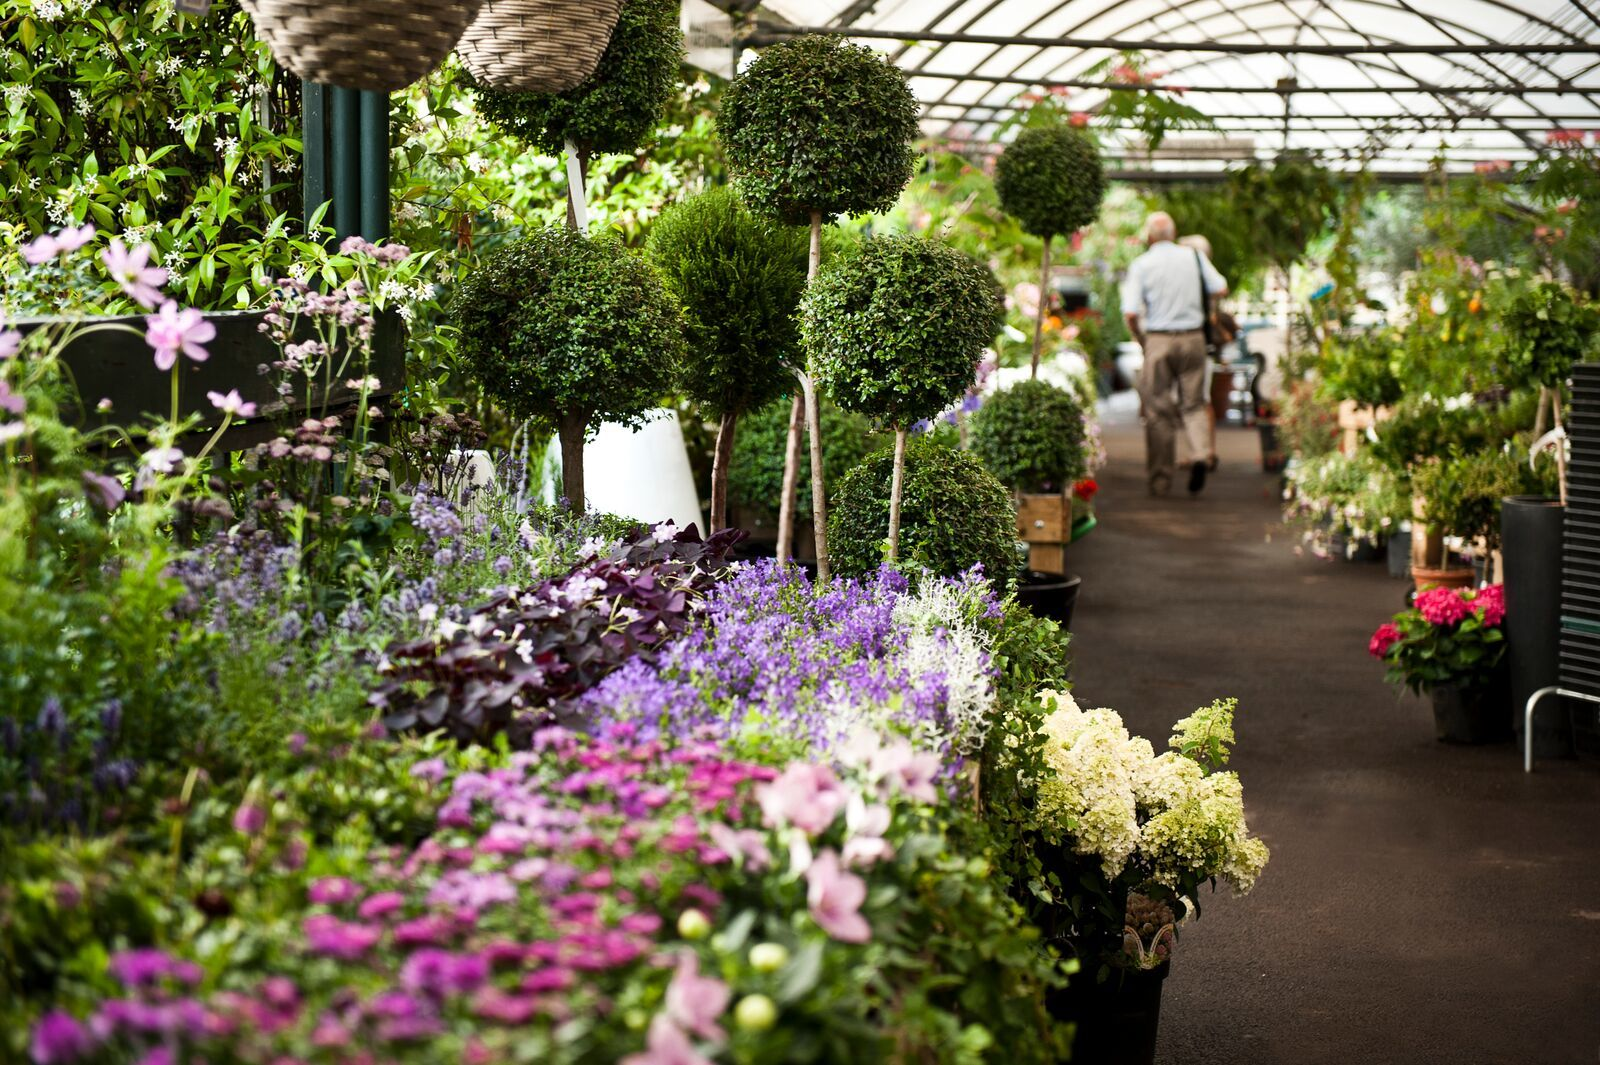 Which garden centres are now open again?